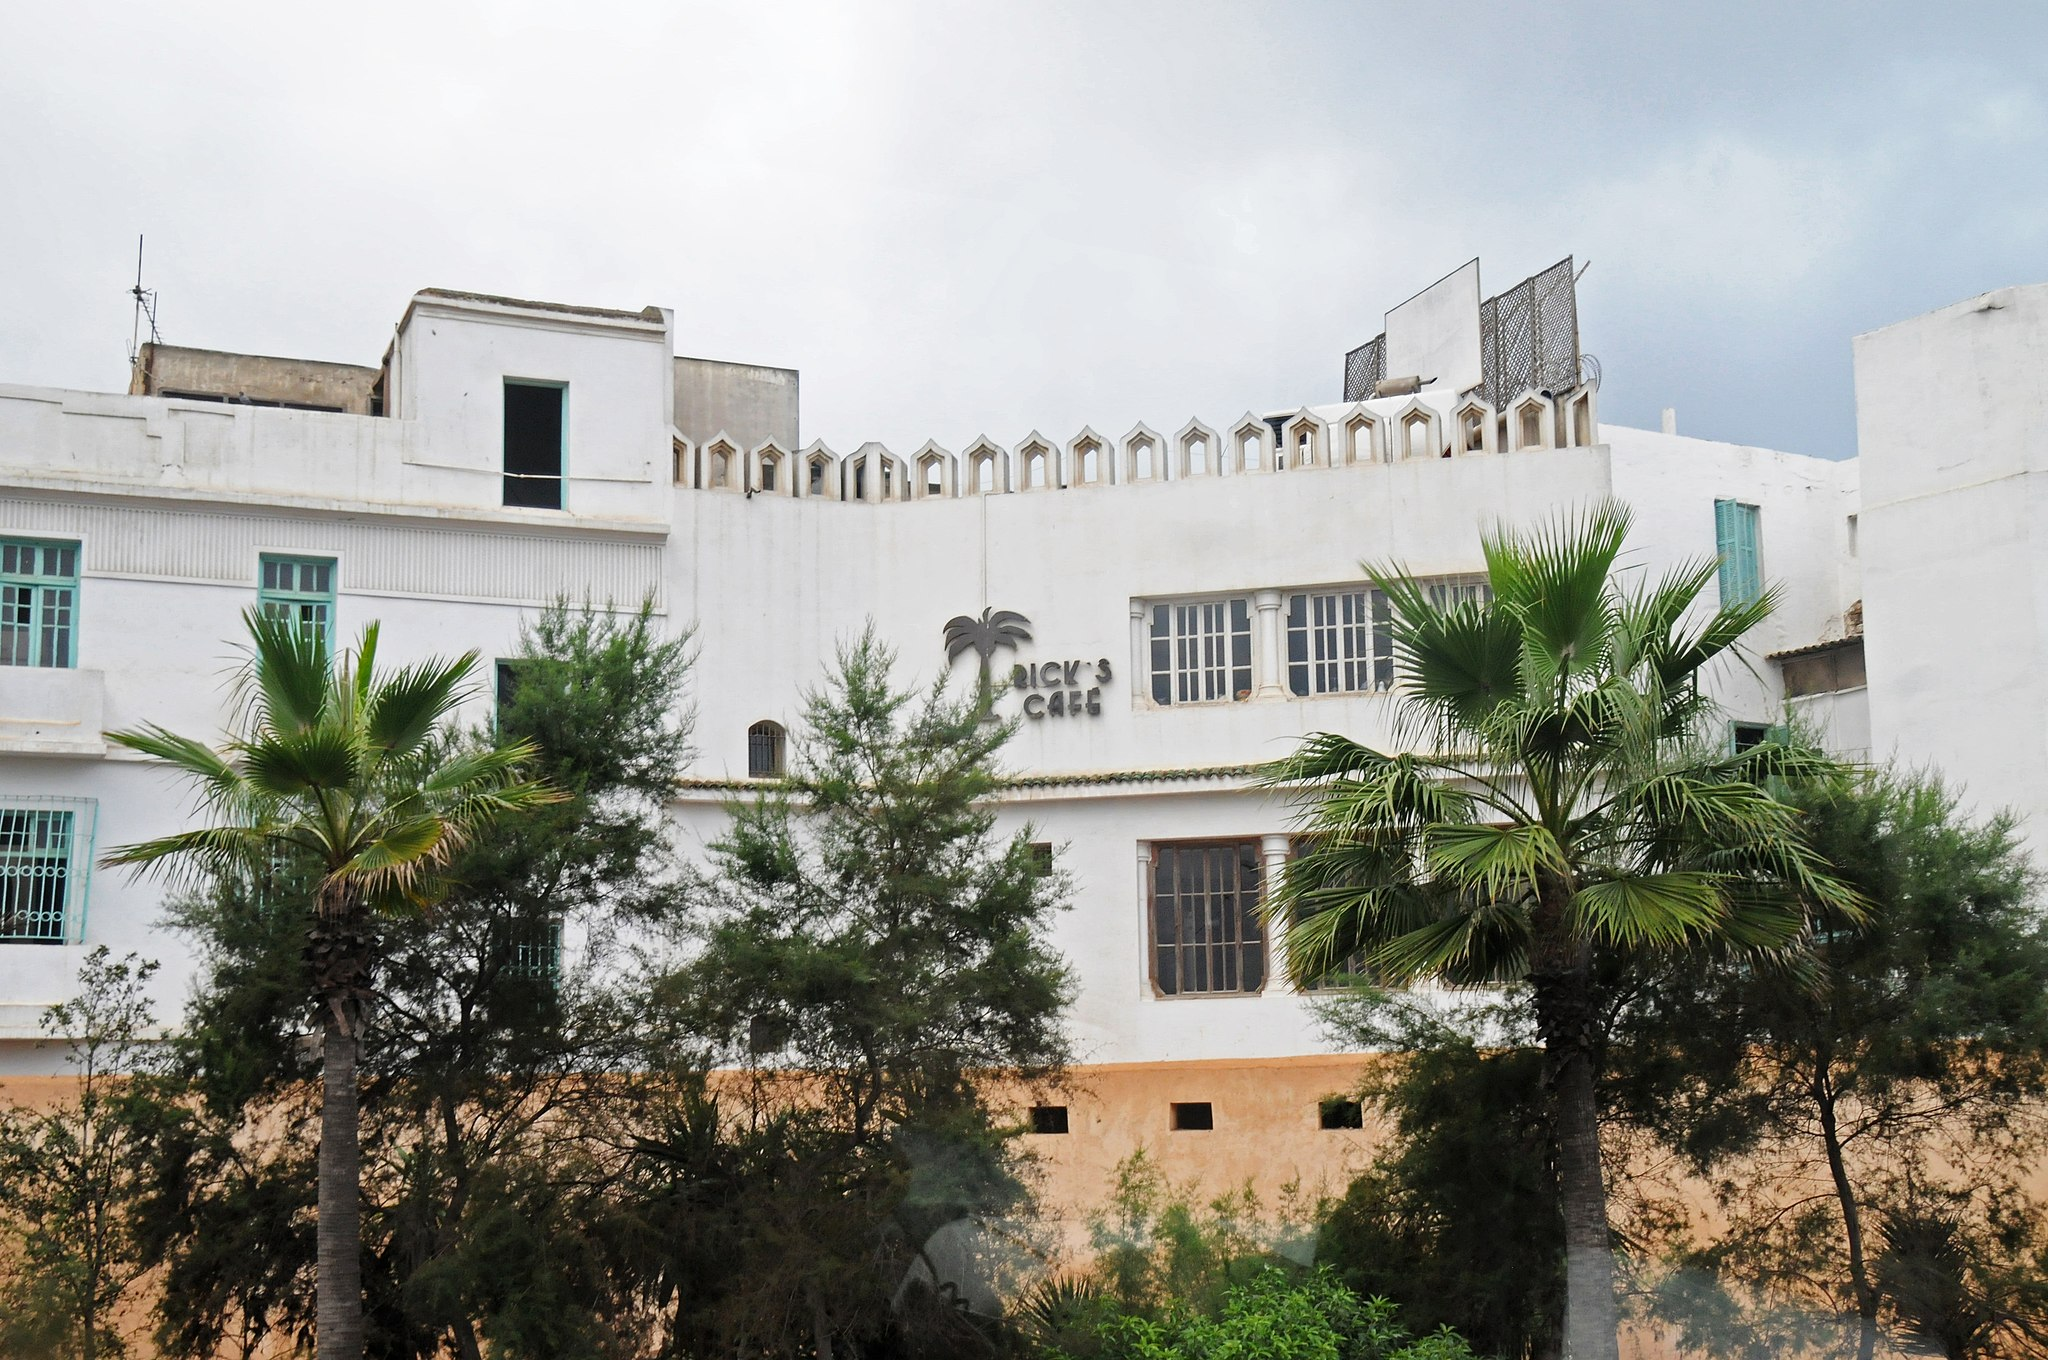 Rick's Cafe (of movie fame) in Casablanca, Morocco - panoramio